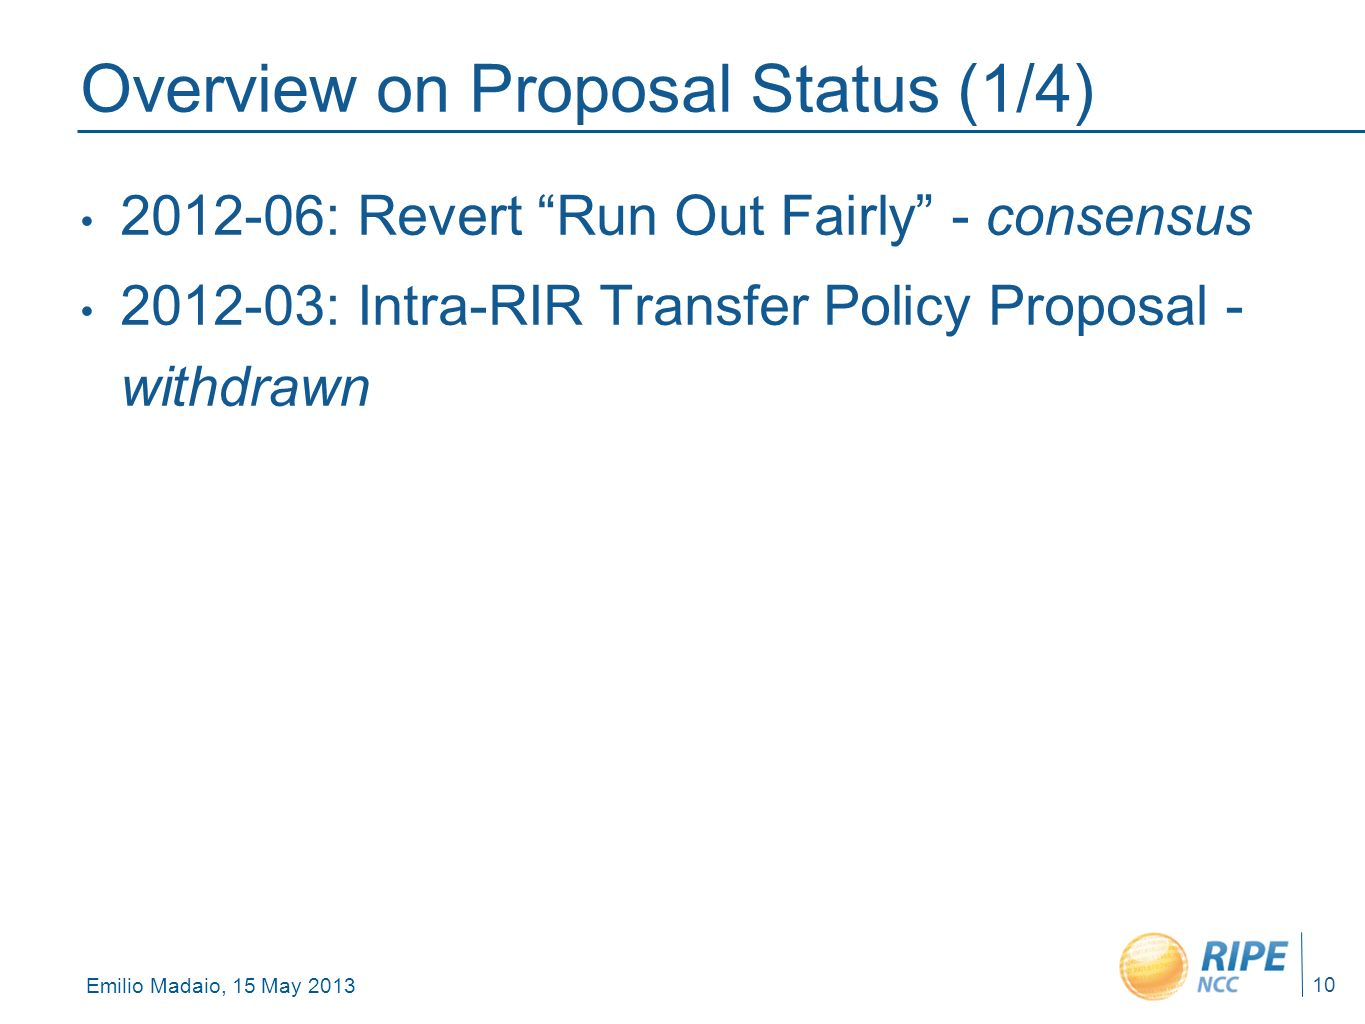 Emilio Madaio, 15 May 2013 10 Overview on Proposal Status (1/4) 2012-06: Revert Run Out Fairly - consensus 2012-03: Intra-RIR Transfer Policy Proposal